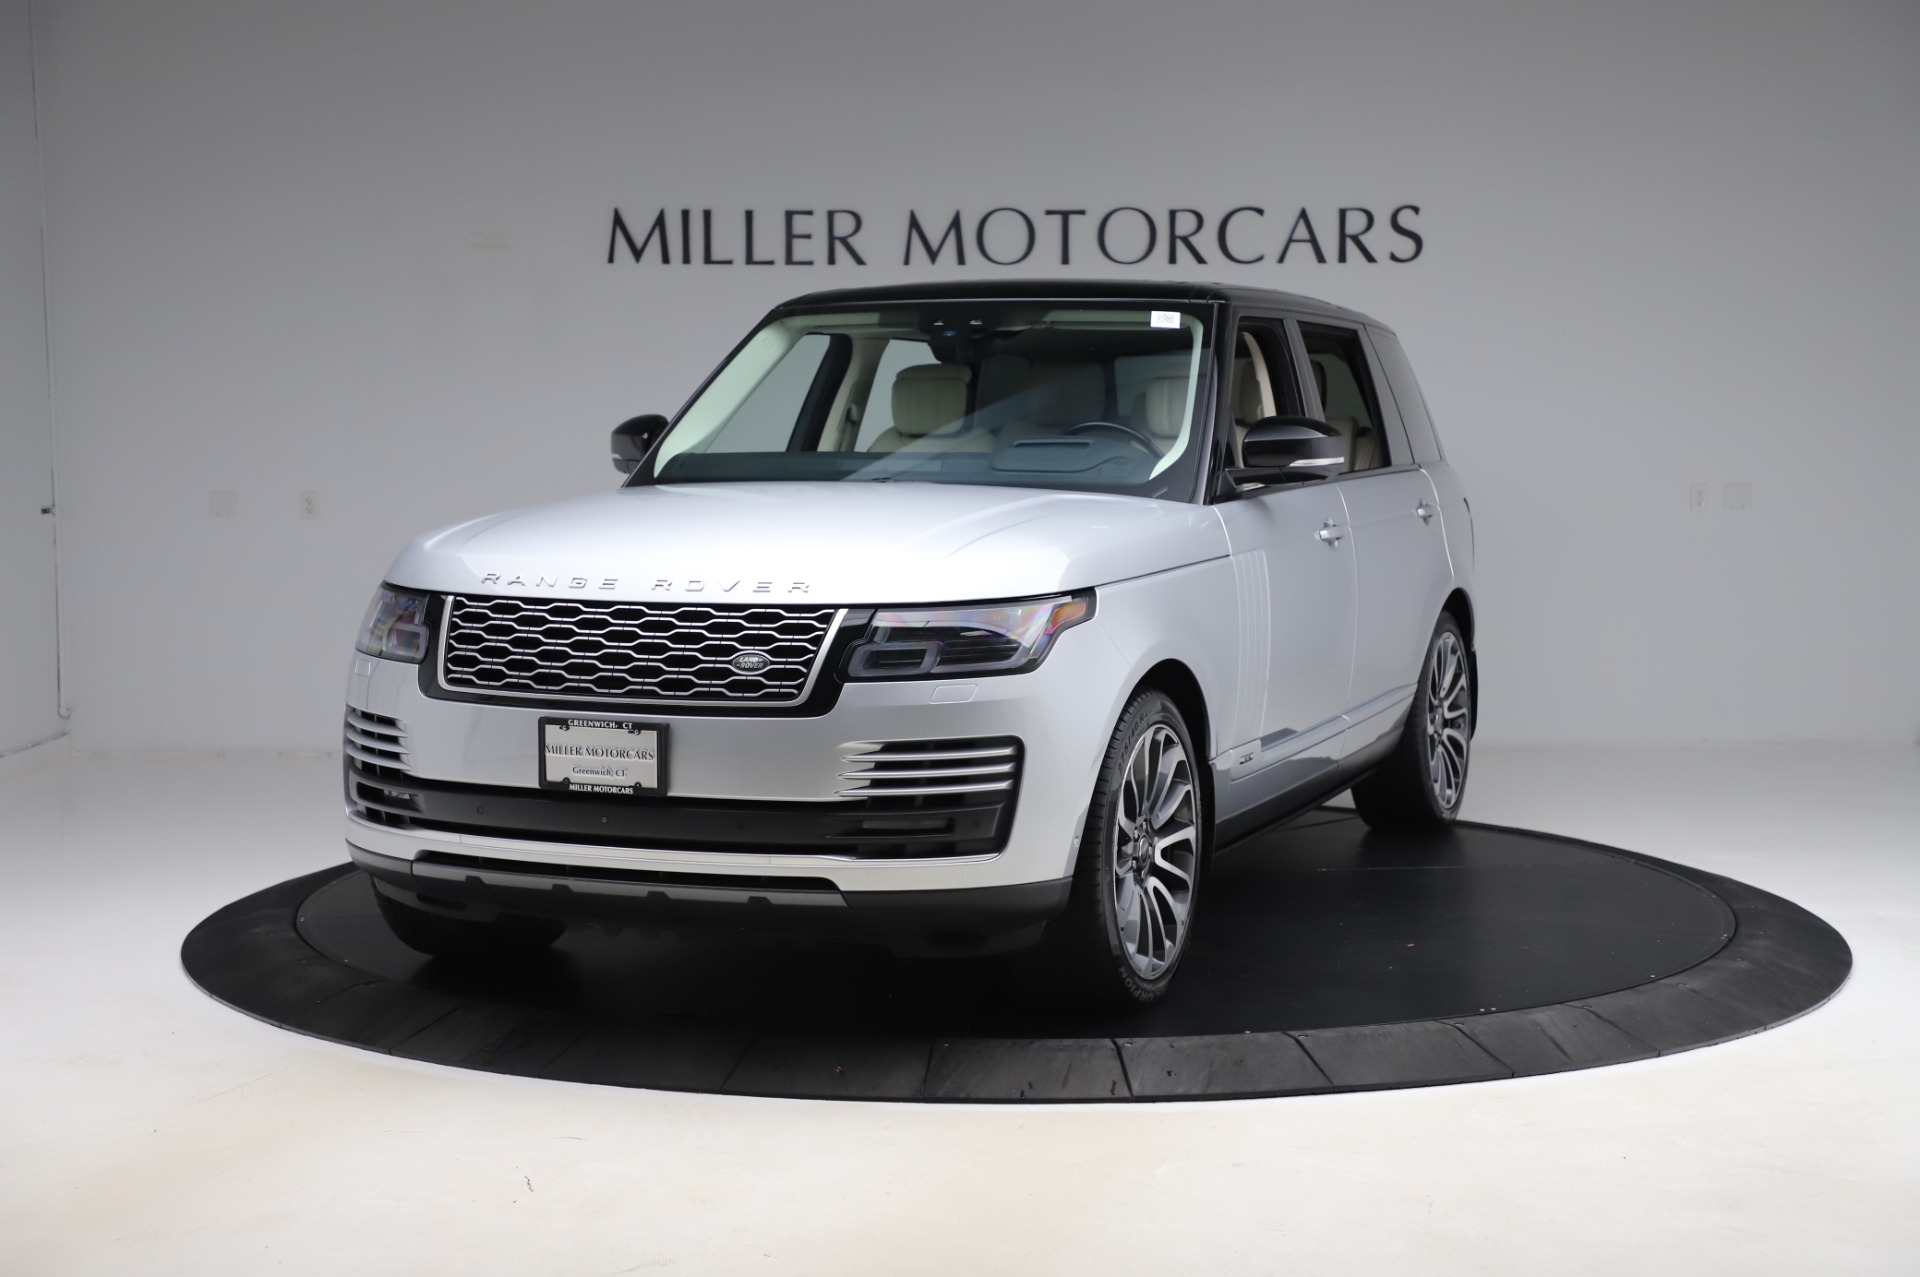 Used 2019 Land Rover Range Rover Supercharged LWB for sale Sold at Alfa Romeo of Westport in Westport CT 06880 1